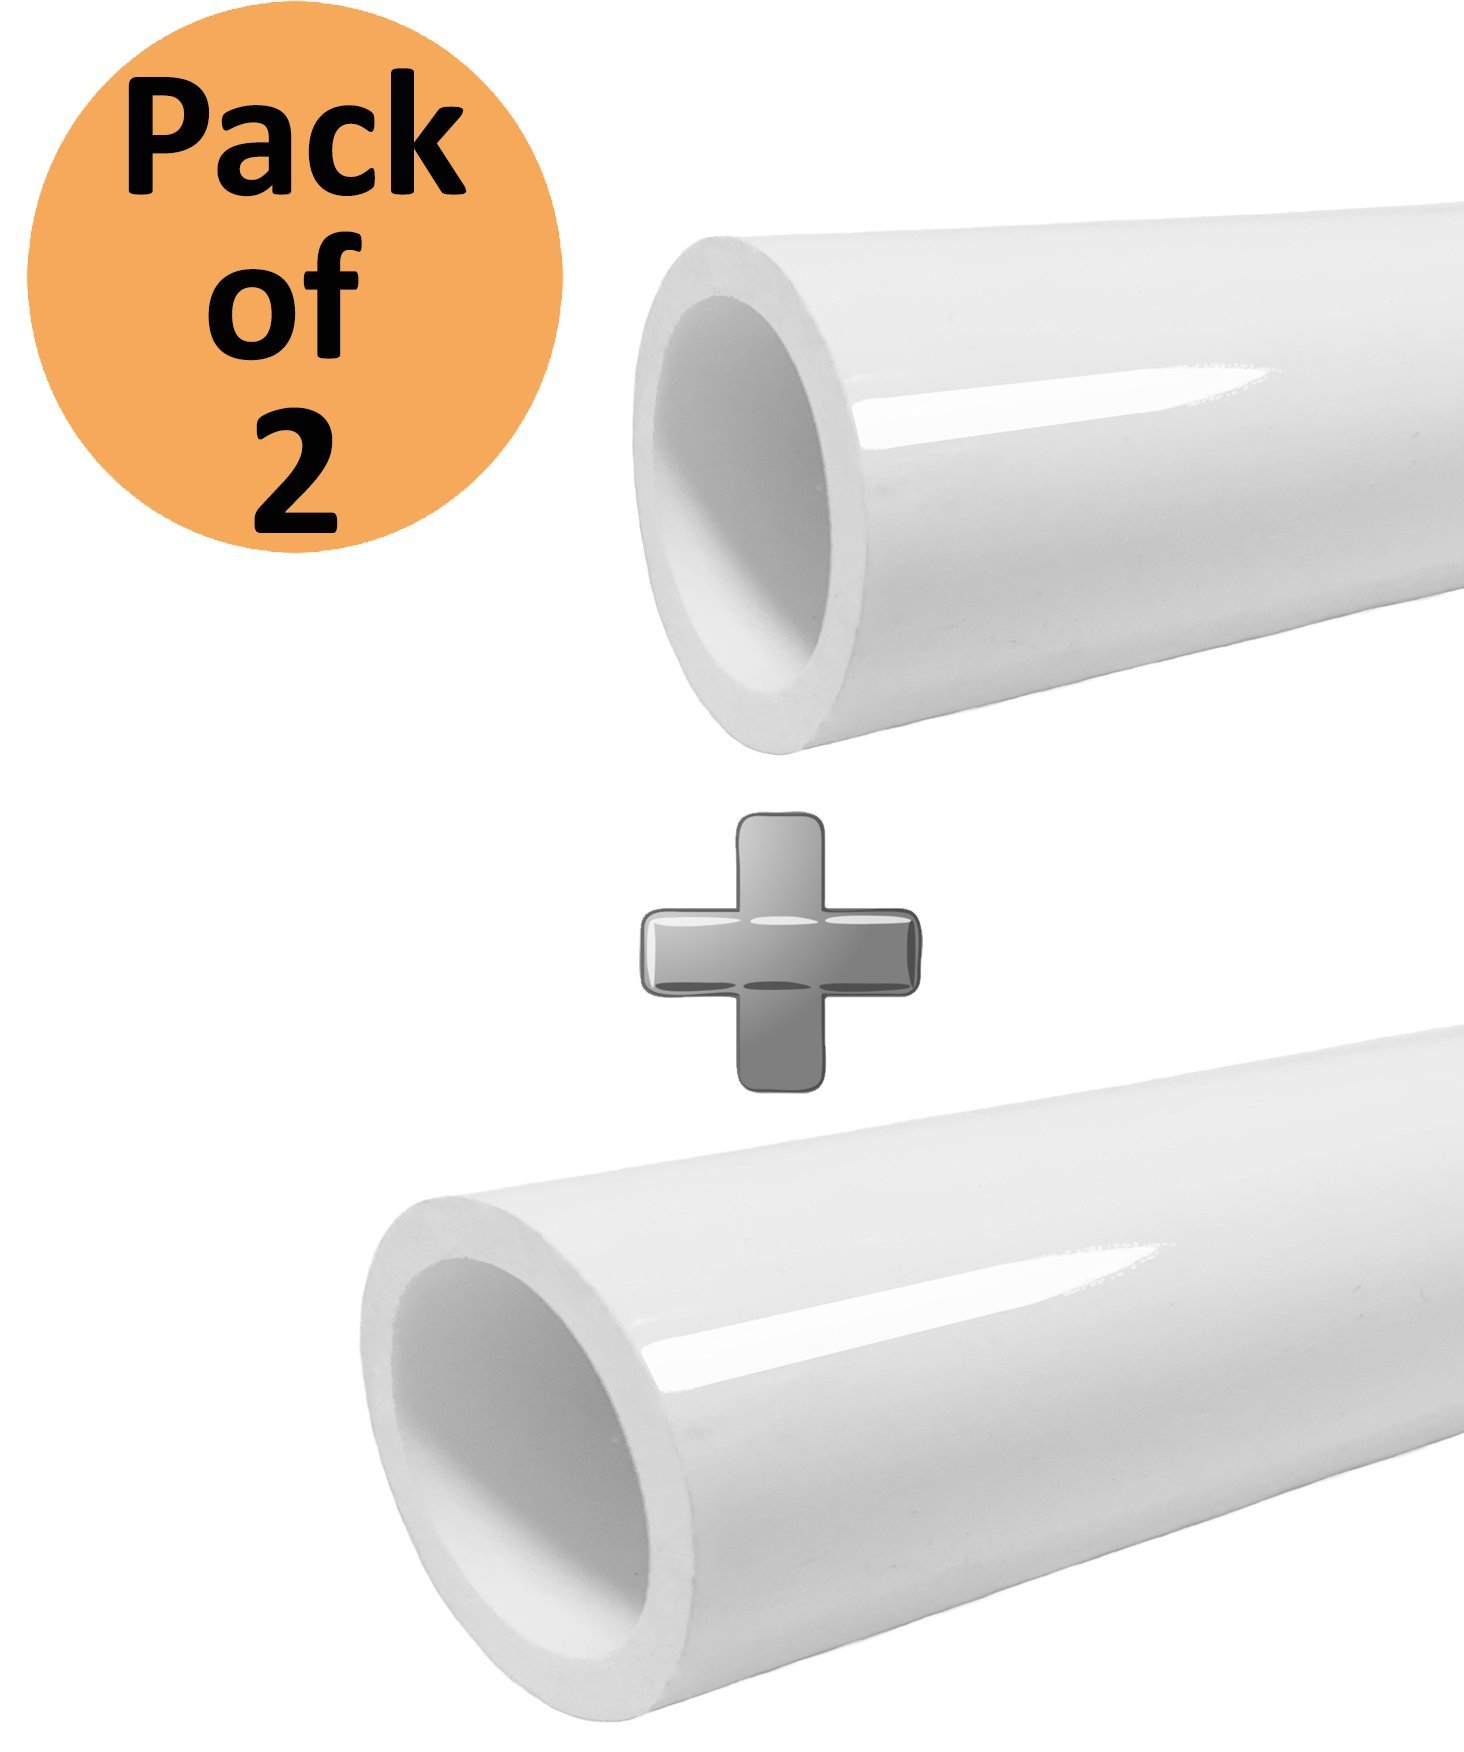 PVC Pipe 1/2 inch 5ft Schedule 40 PVC Pipe half inch, Furniture Grade,Size Pipe 5' long, White [2Pack]